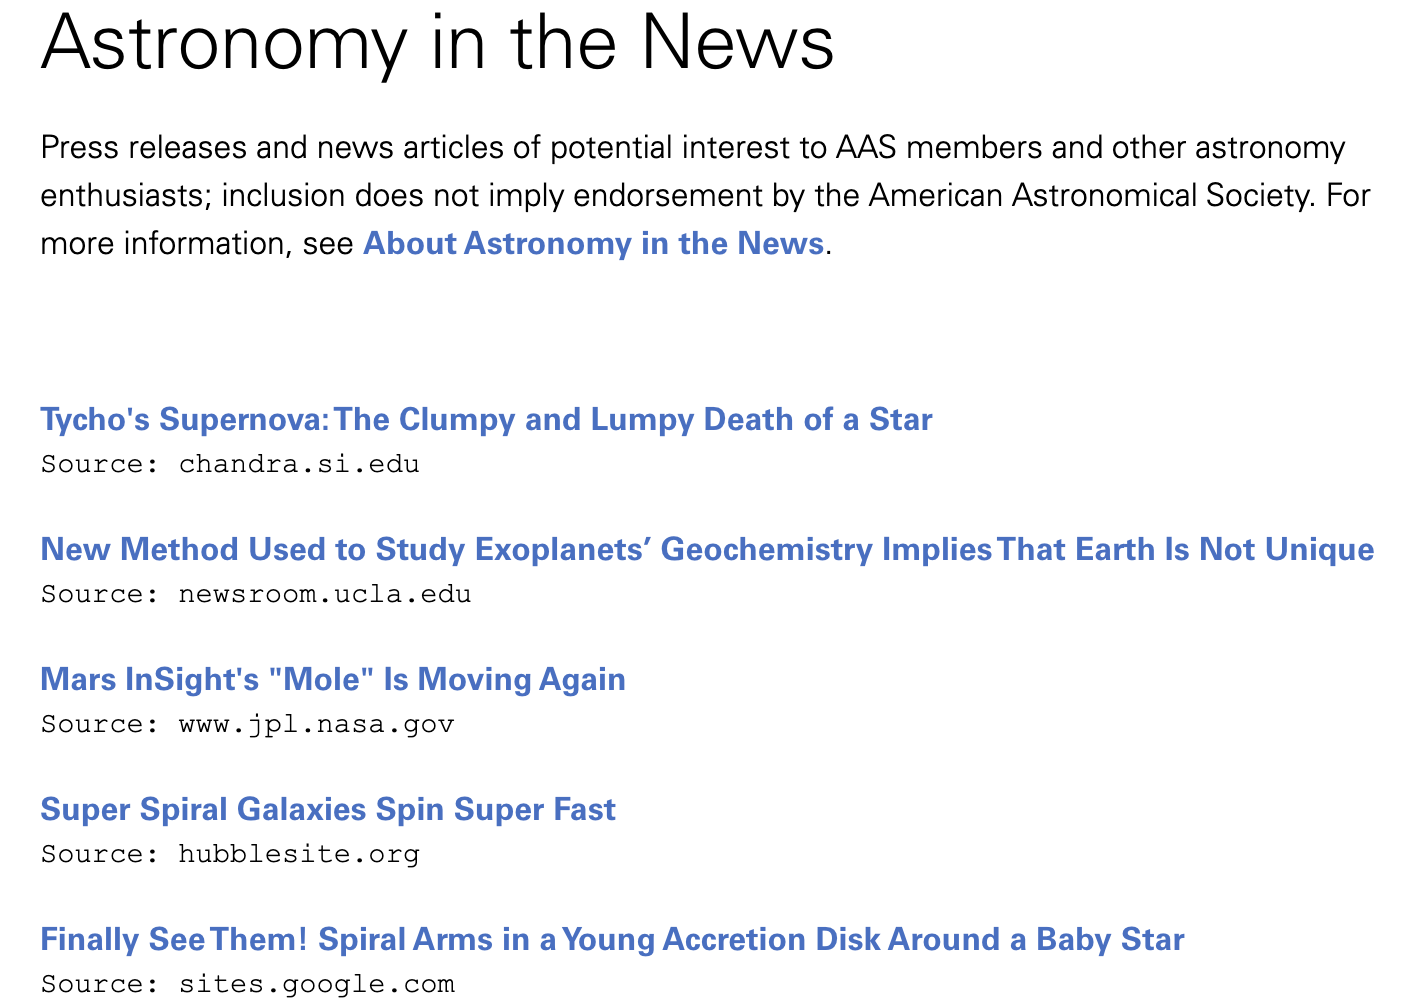 Astronomy in the News Page